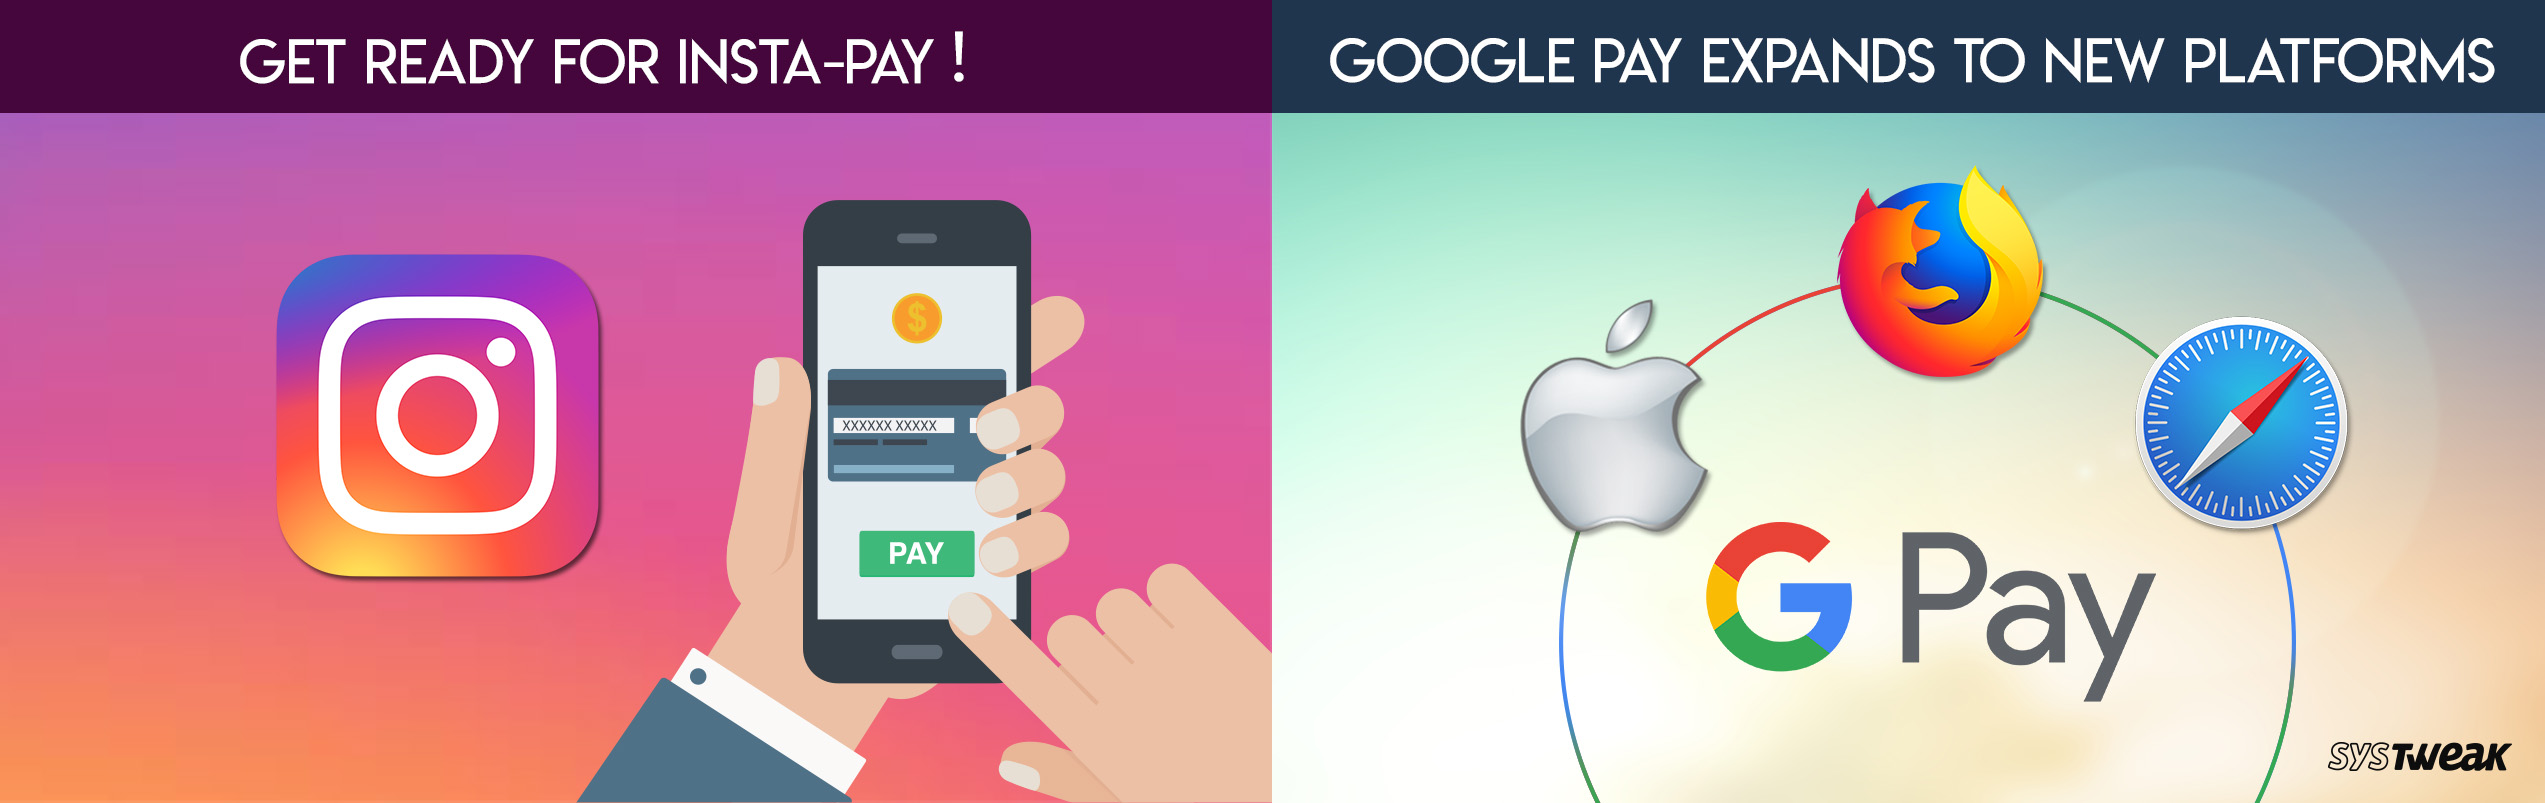 NEWSLETTER: INSTAGRAM QUIETLY ROLLS OUT PAYMENTS FEATURE & GOOGLE PAY FOR BROWSERS, MAC AND IOS